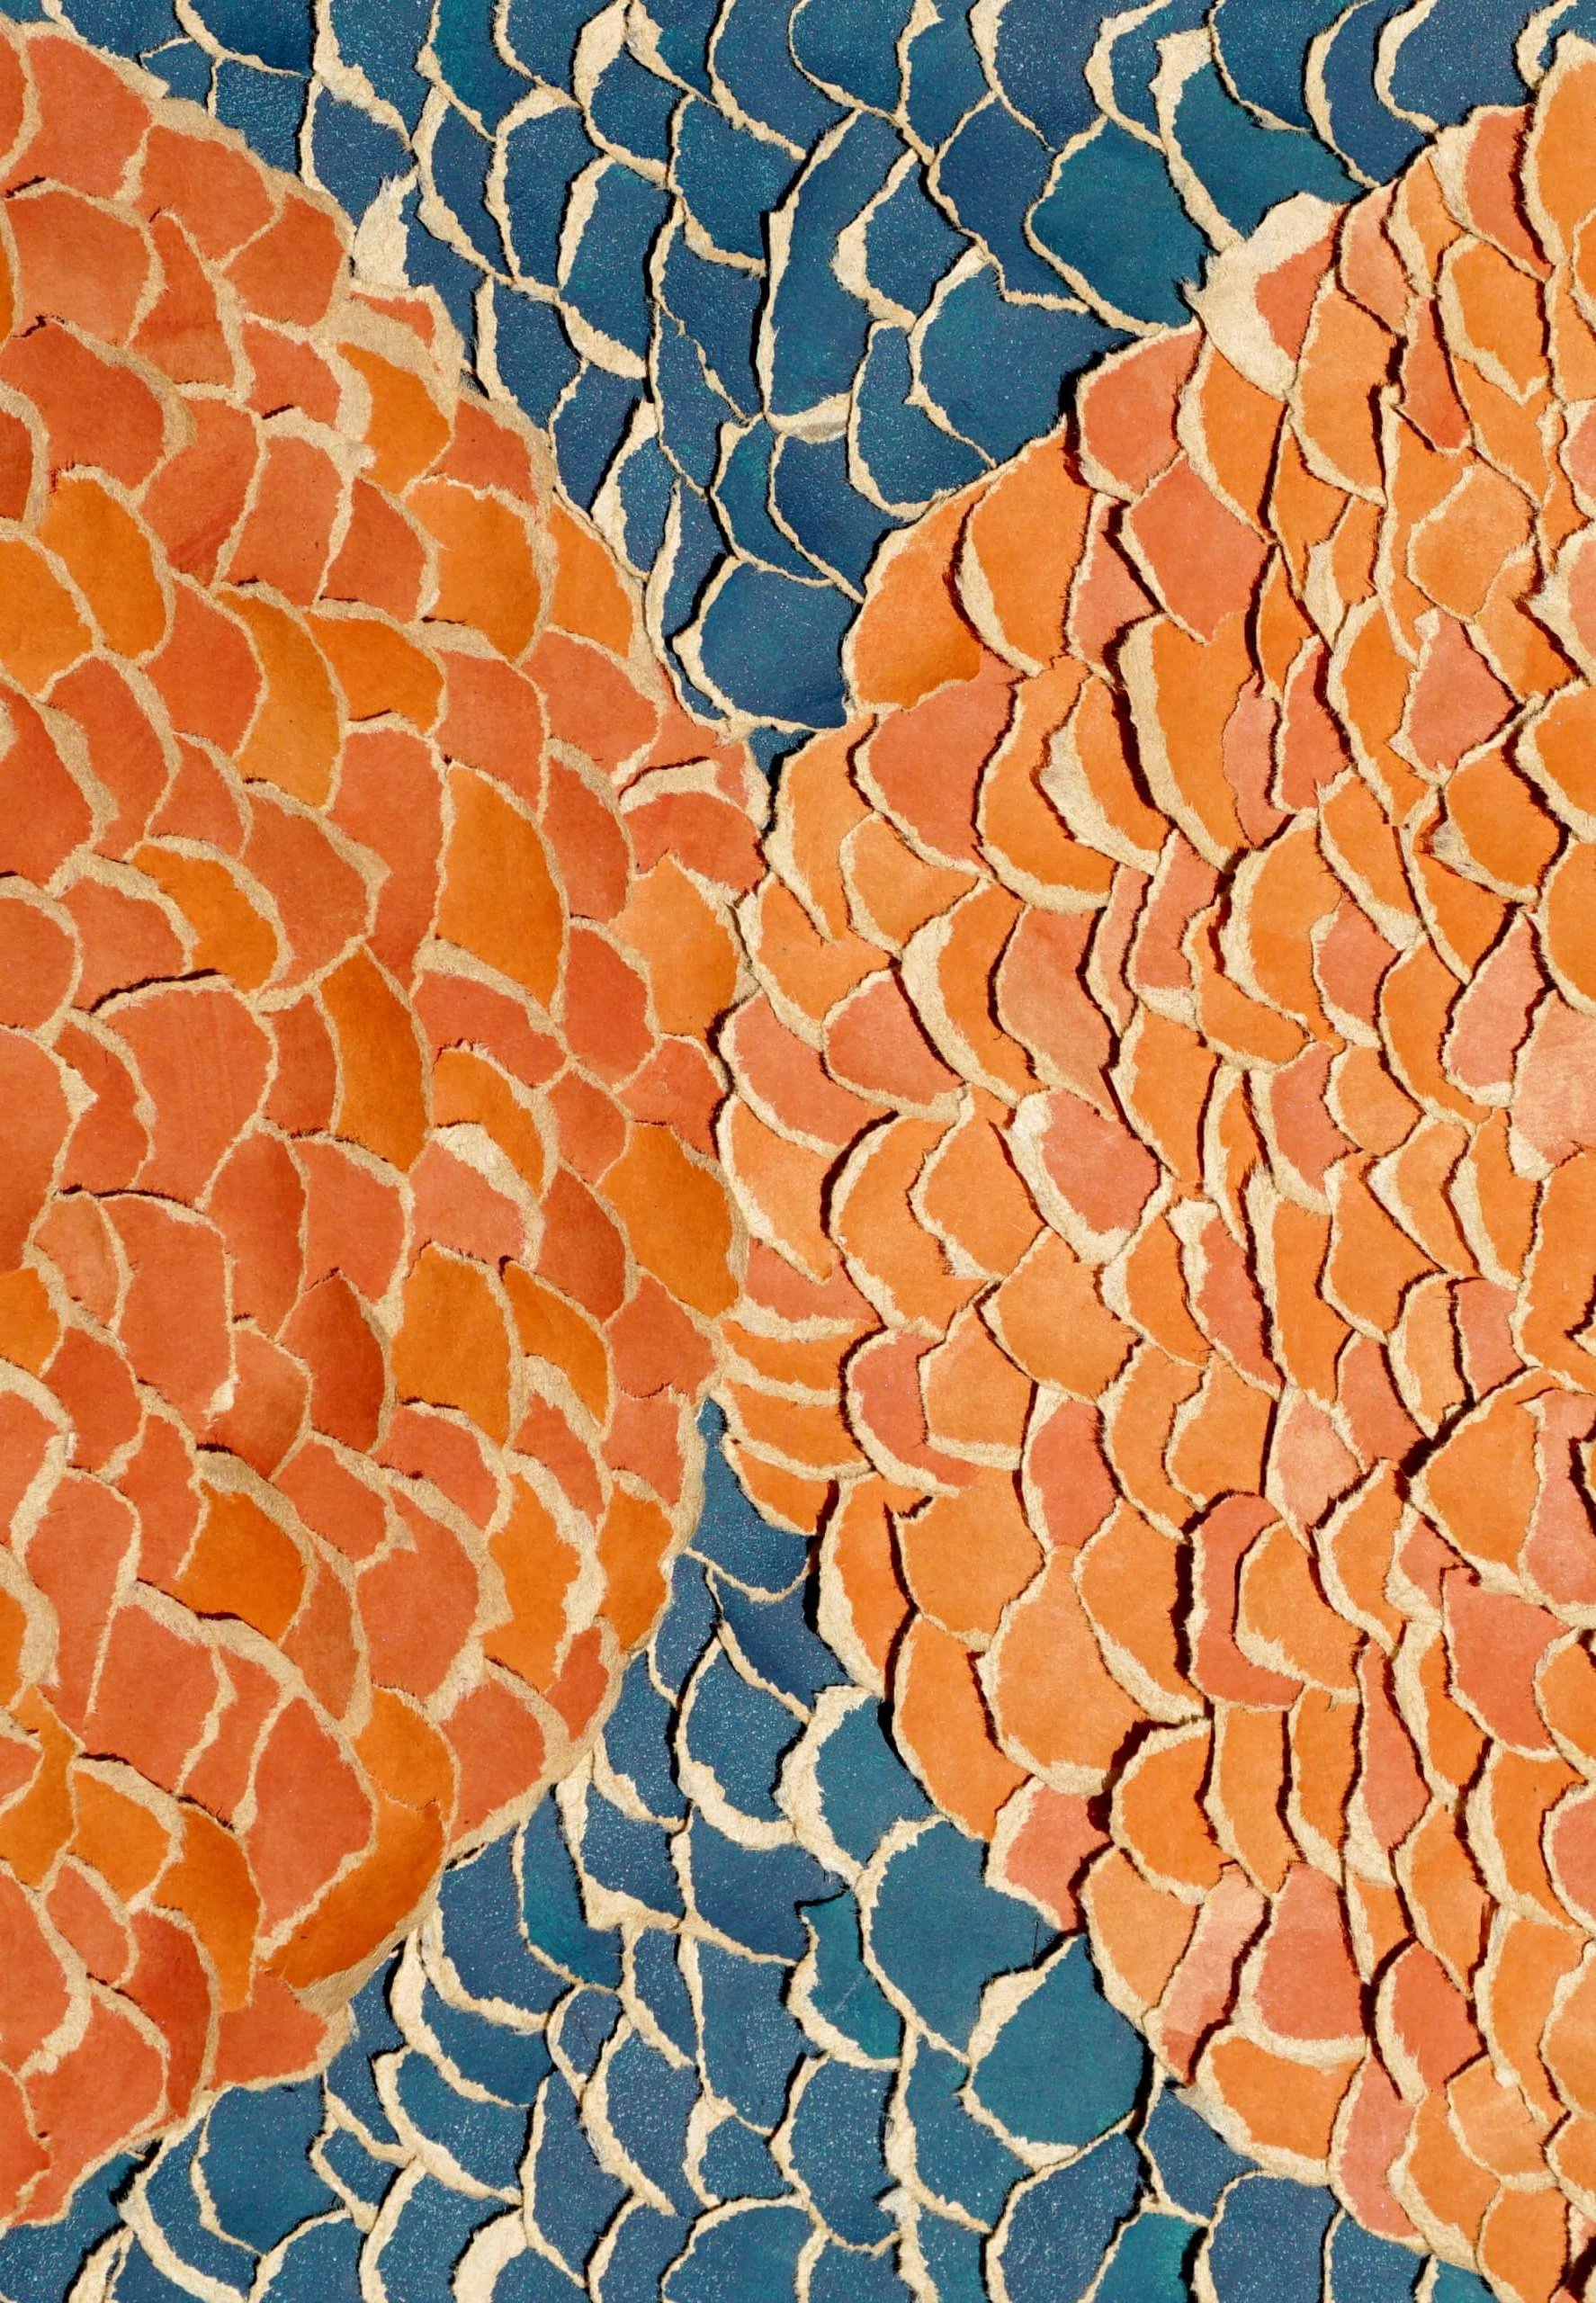 An abstract torn paper collage - orange paper torn into small circles is arranged to resemble fish scales, forming two semi-circles that meet in the center. Blue torn paper circles fill the gap behind the orange.